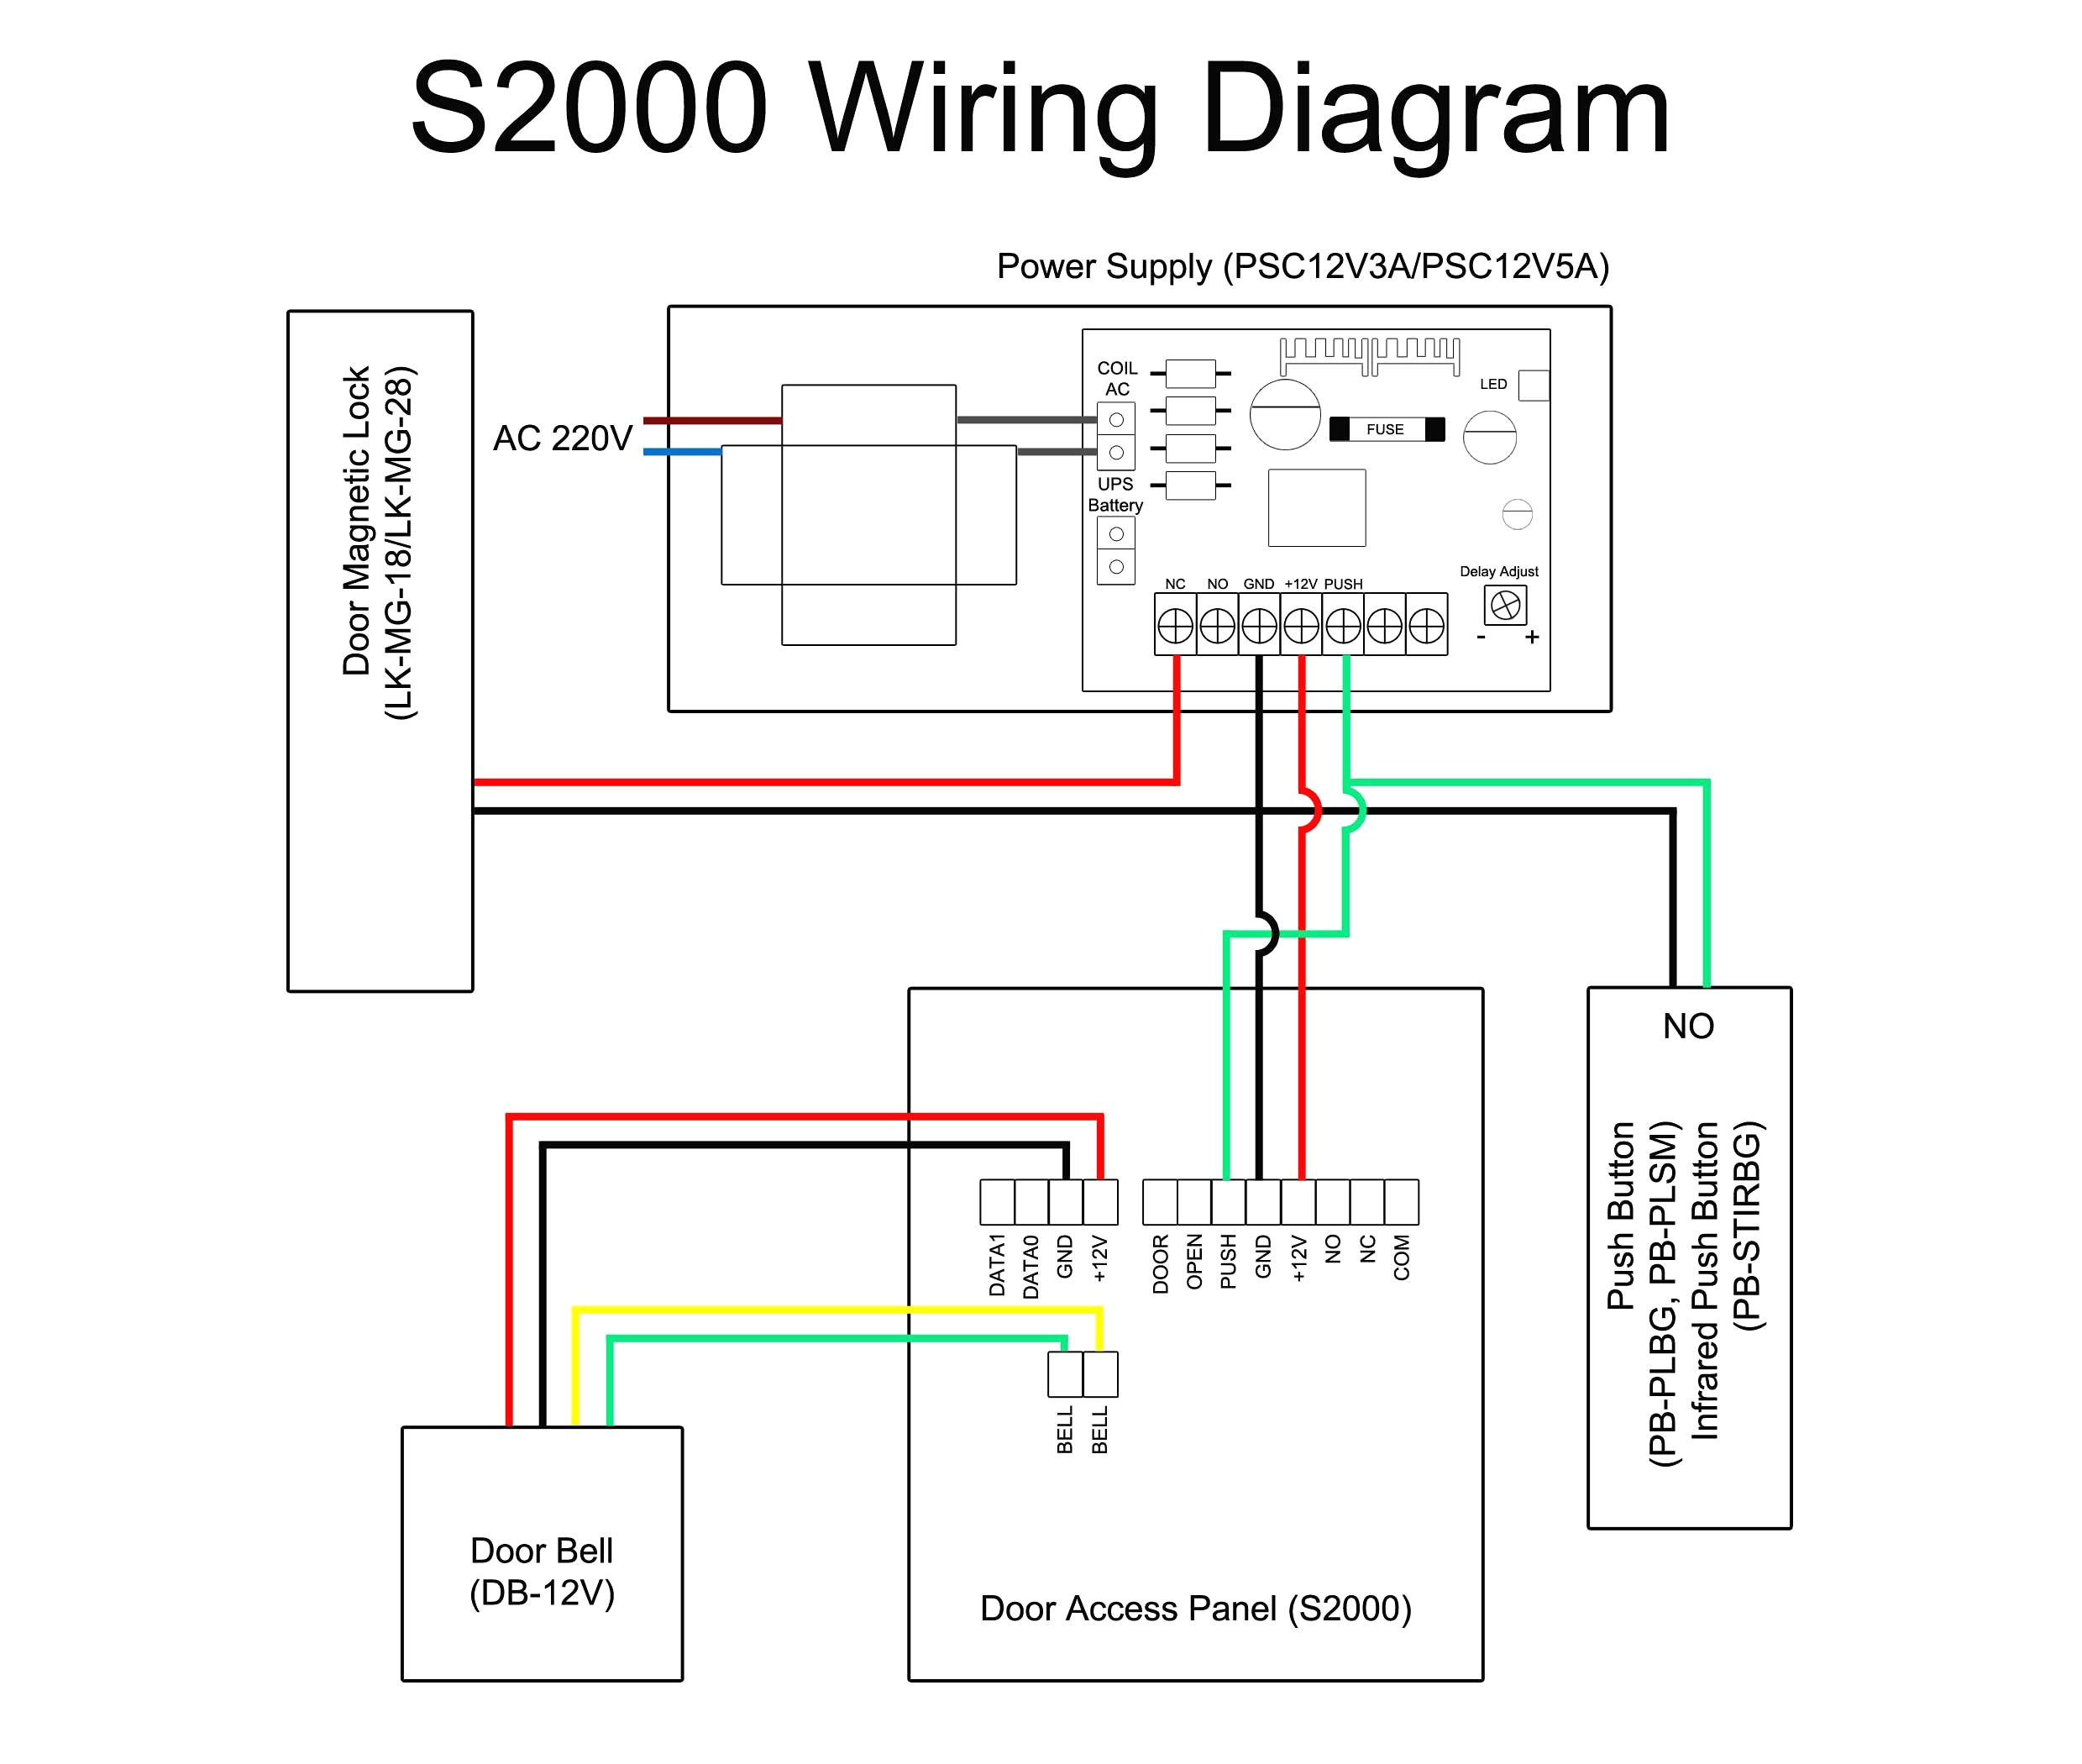 security camera wiring diagram Collection-Wiring Diagram for Alarm Pir Refrence Samsung Security Camera Wiring Diagram Health Shop 16-l